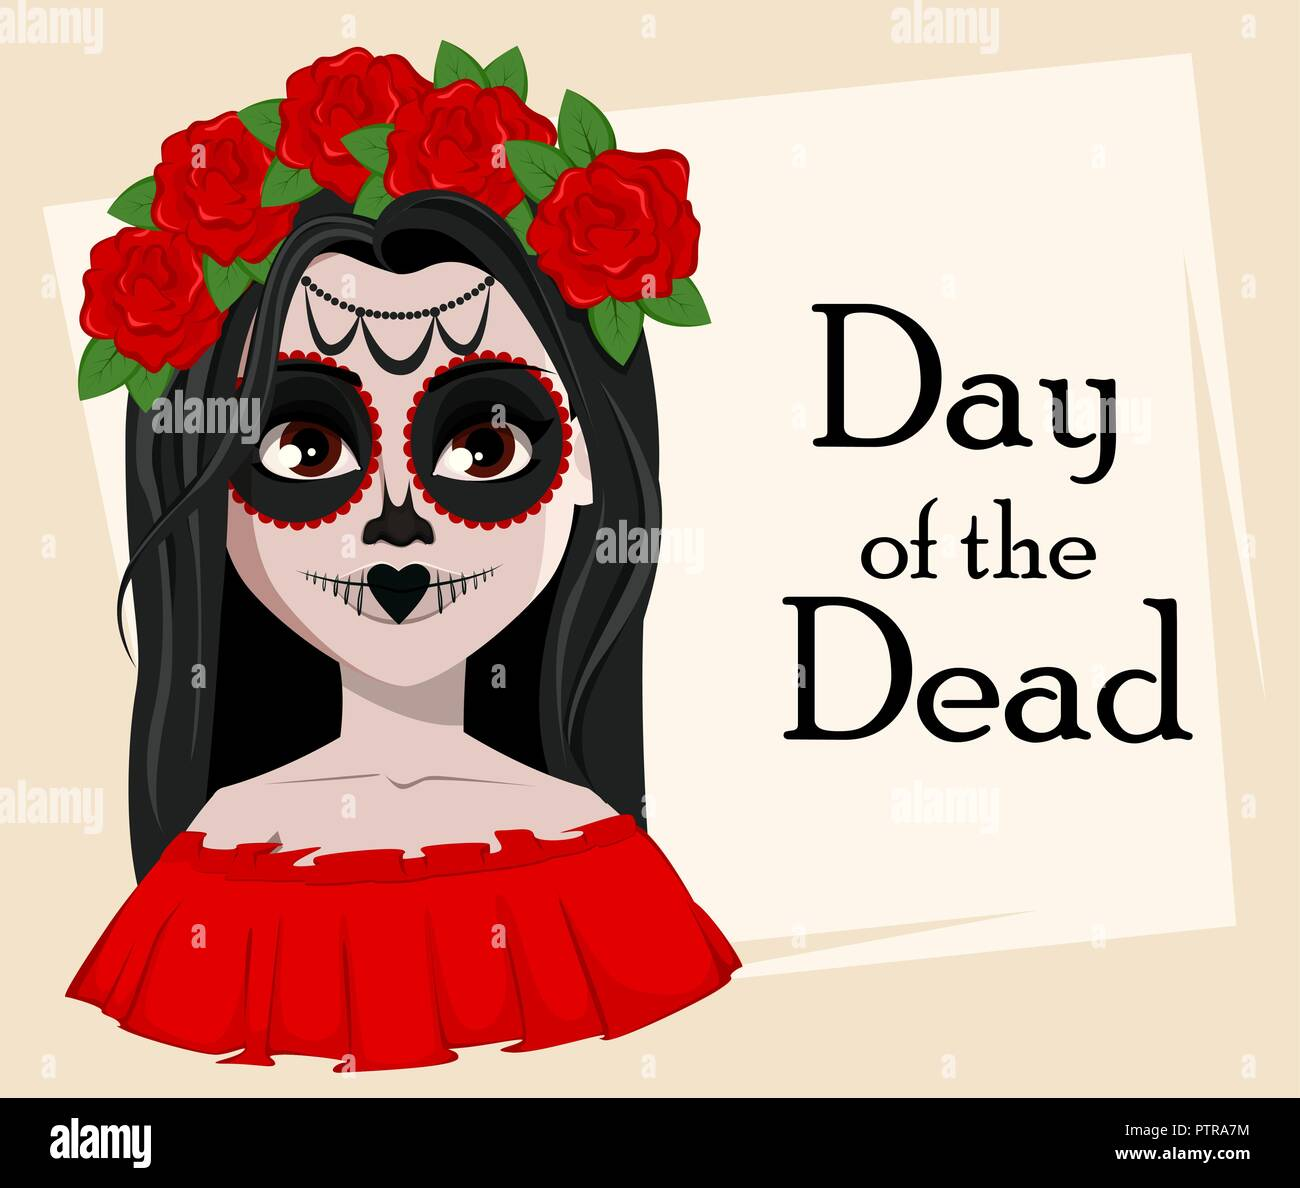 Day Of The Dead Traditional Holiday Beautiful Girl With Spooky Body Art Vector Illustration Usable For Greeting Card Poster Flyer Stock Vector Image Art Alamy